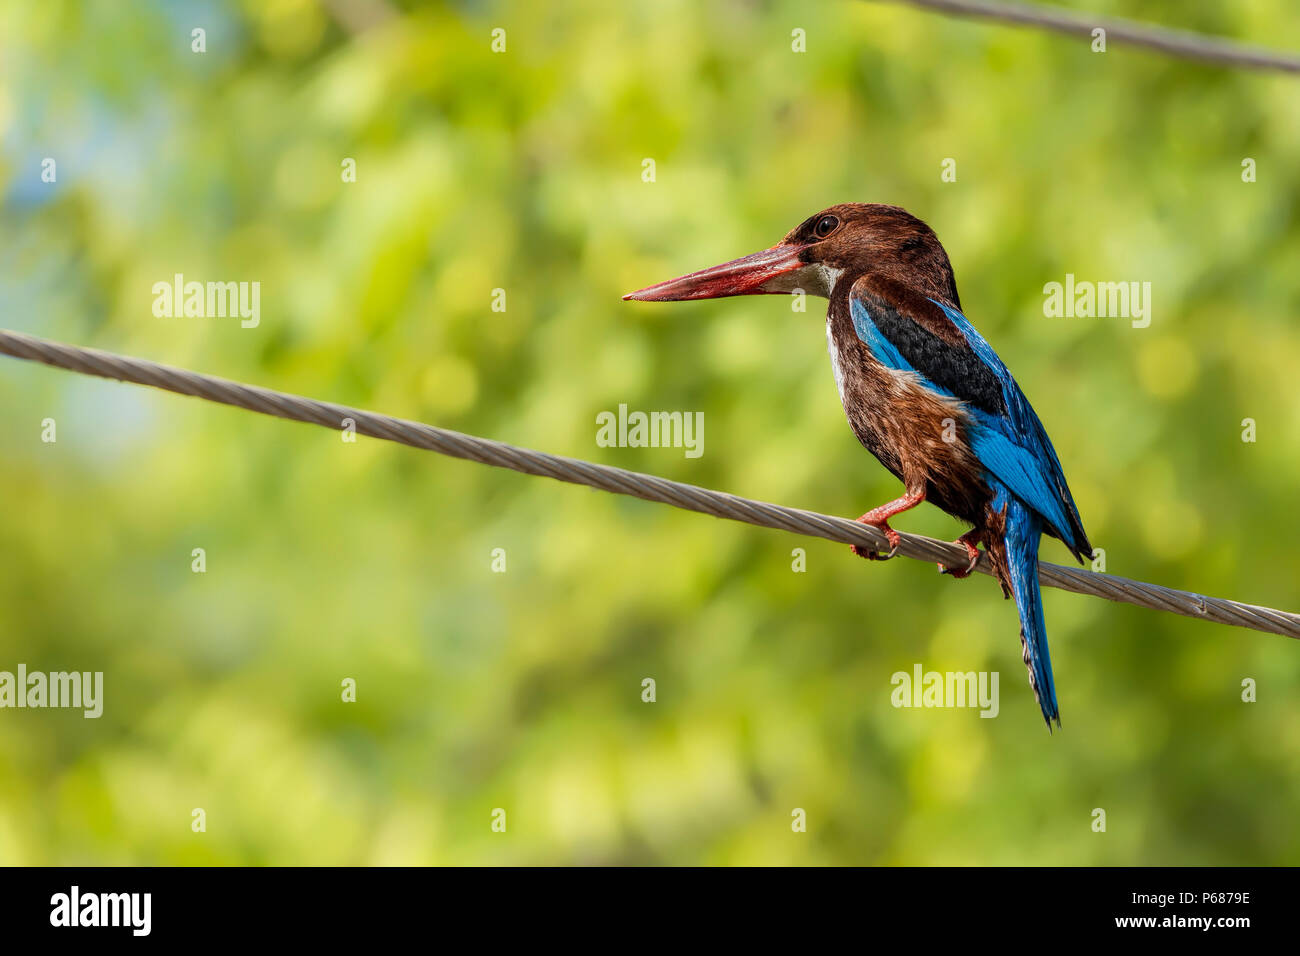 White-Throated Kingfisher (Halcyon smyrnensis). - Stock Image